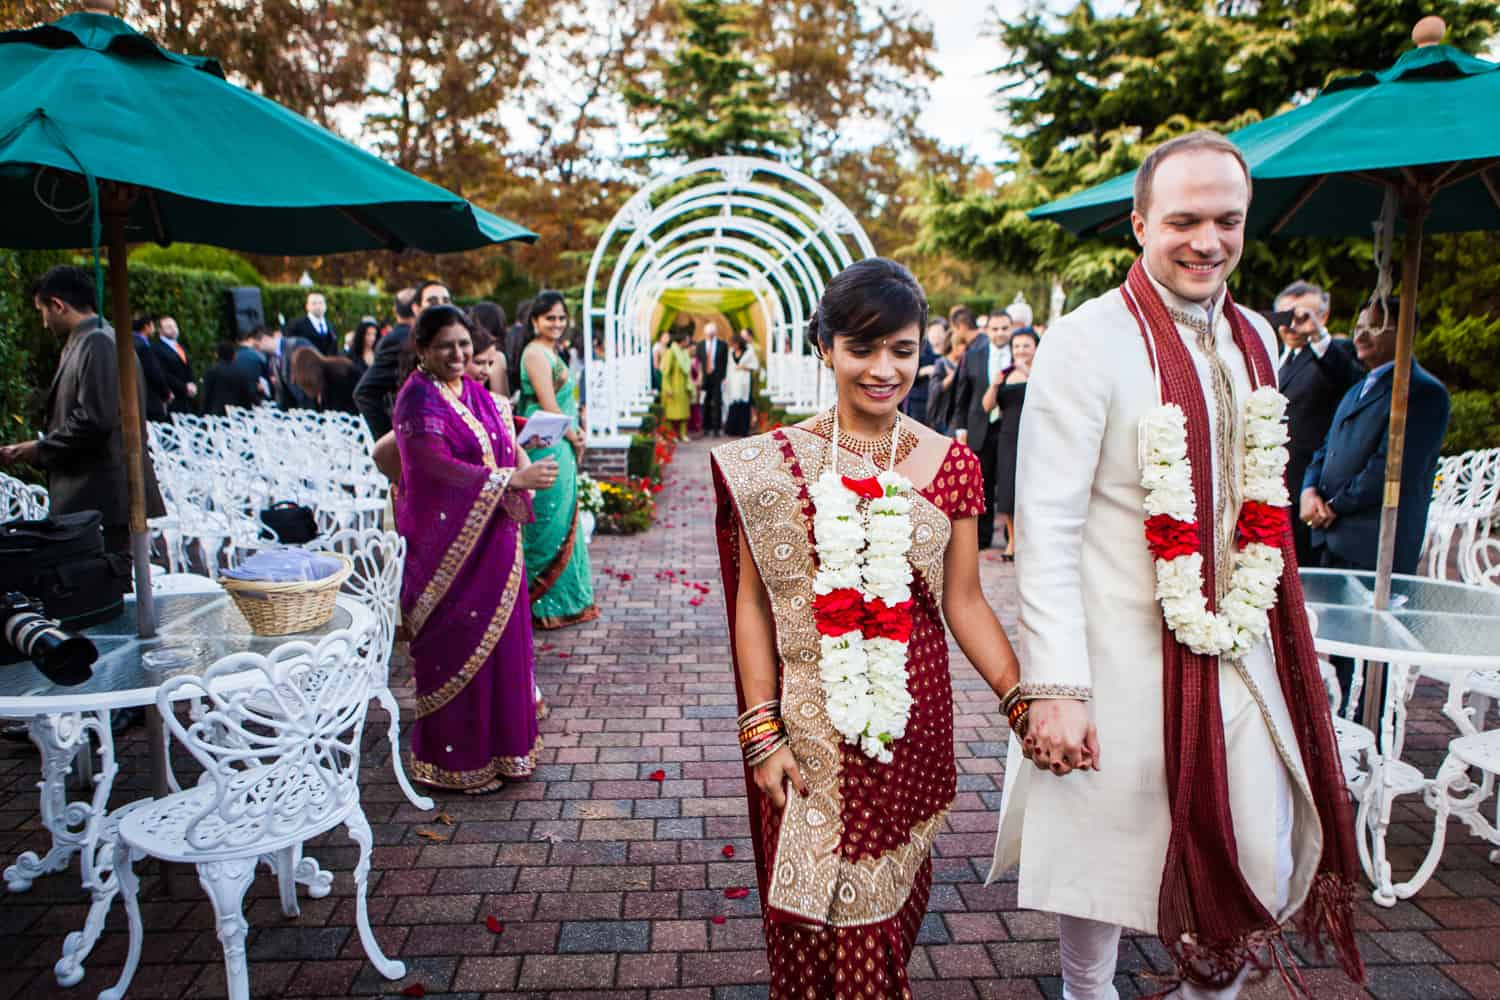 Bride and groom recessing after traditional Hindu wedding ceremony at an East Wind Inn wedding